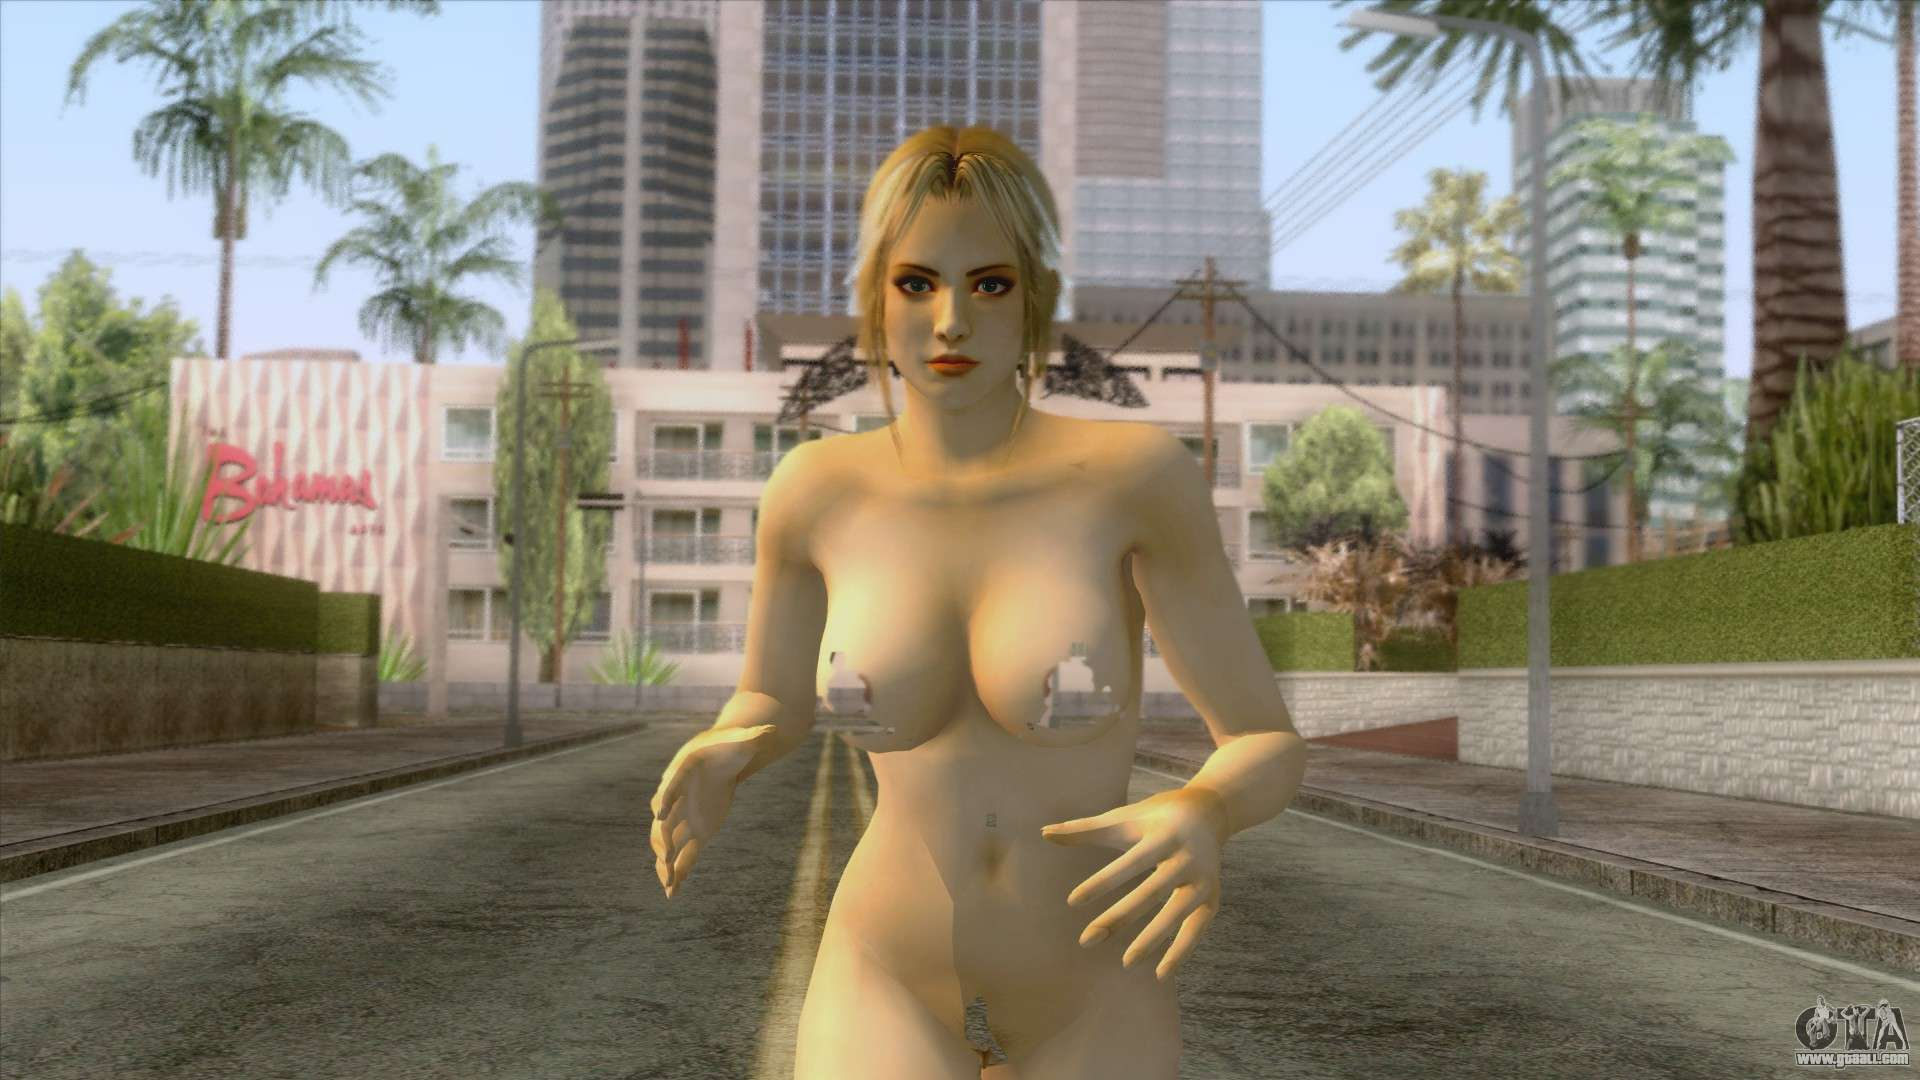 Gta san andreas nude mod think